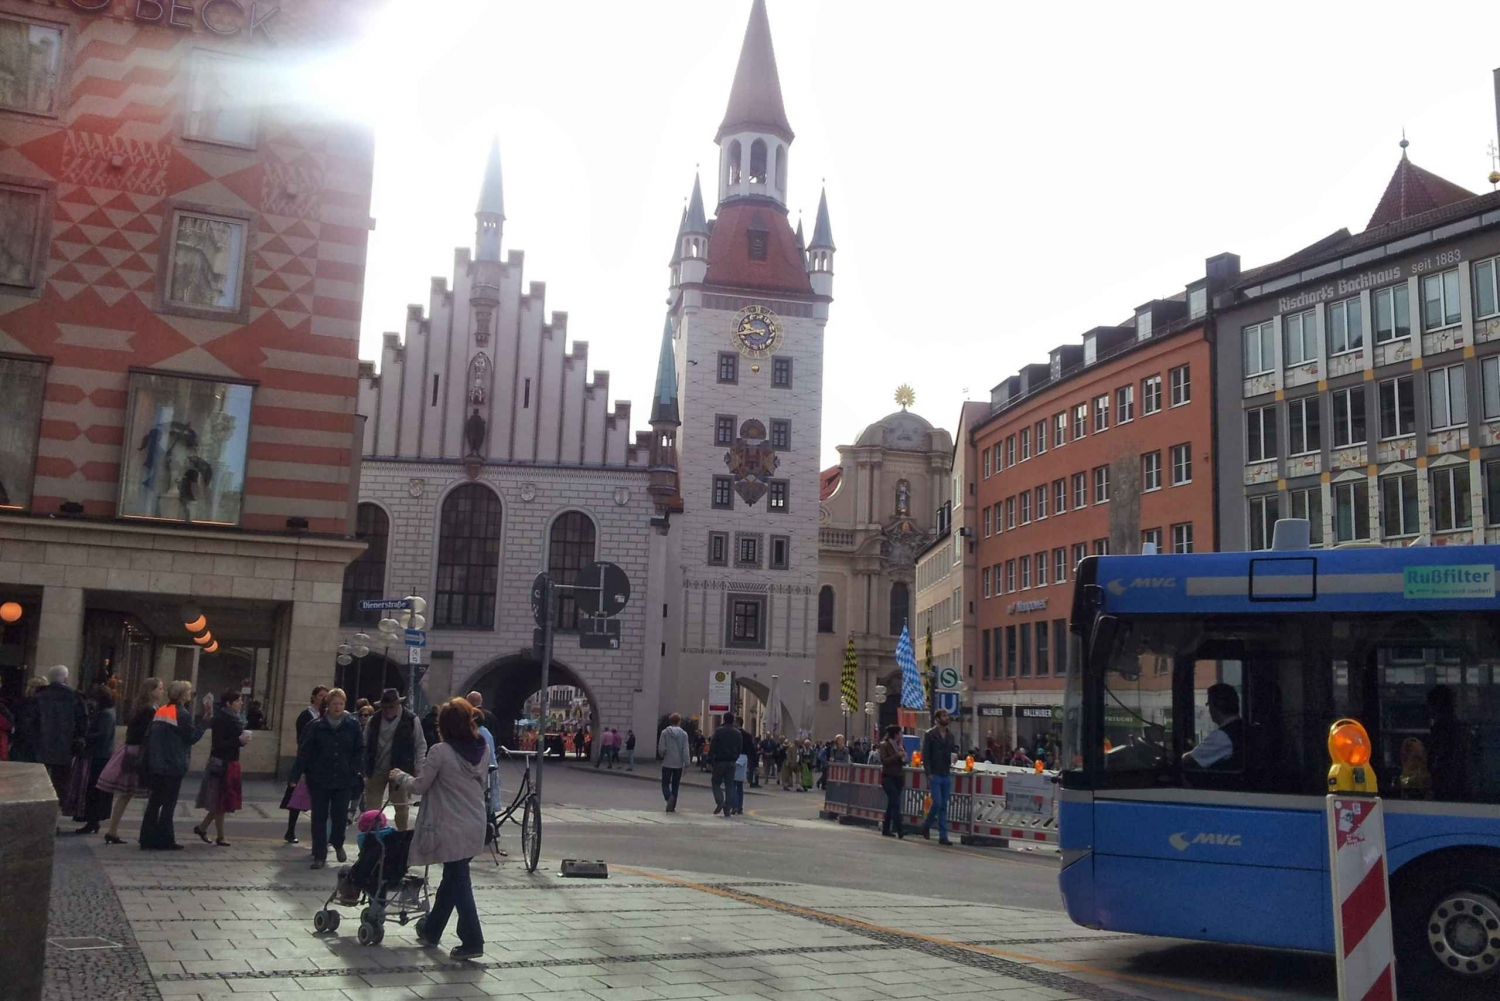 Strolling through the streets of Munich